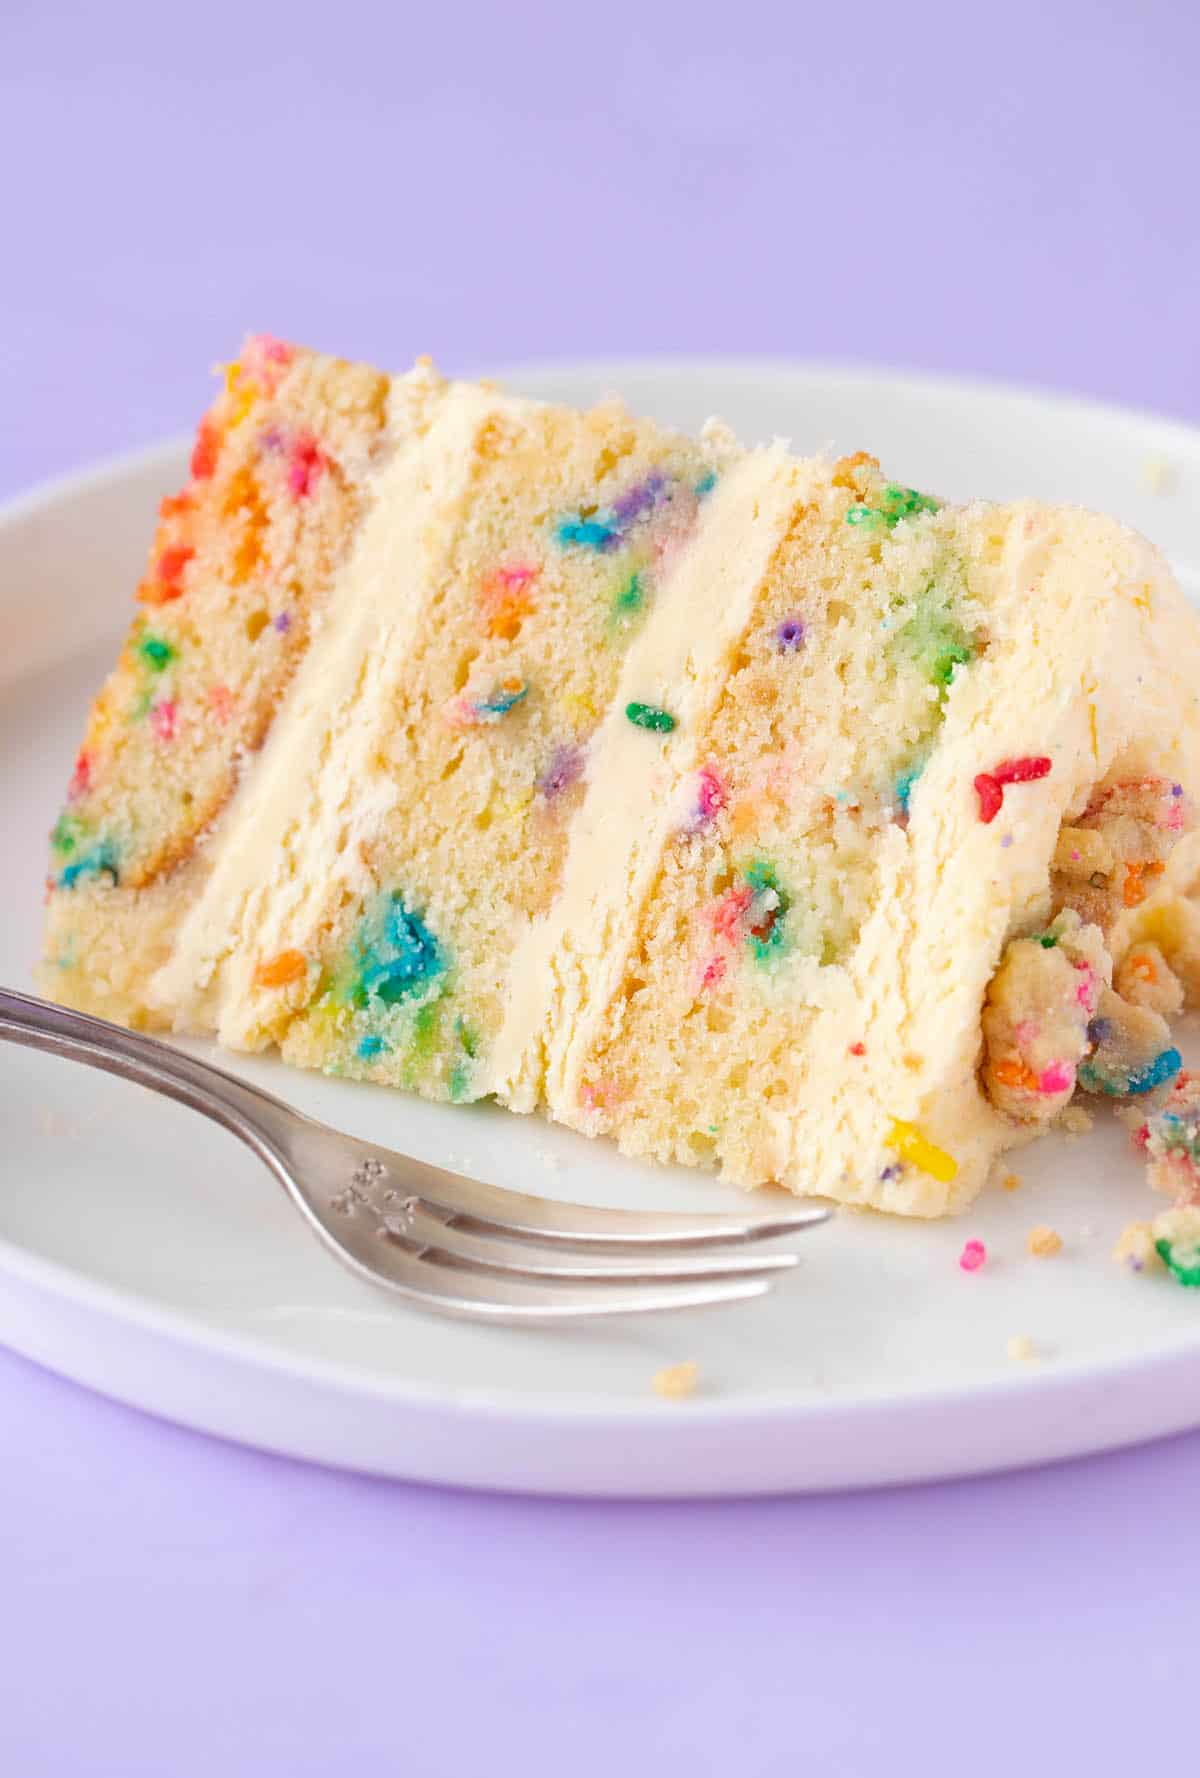 A slice of homemade Funfetti Birthday Cake on a white plate